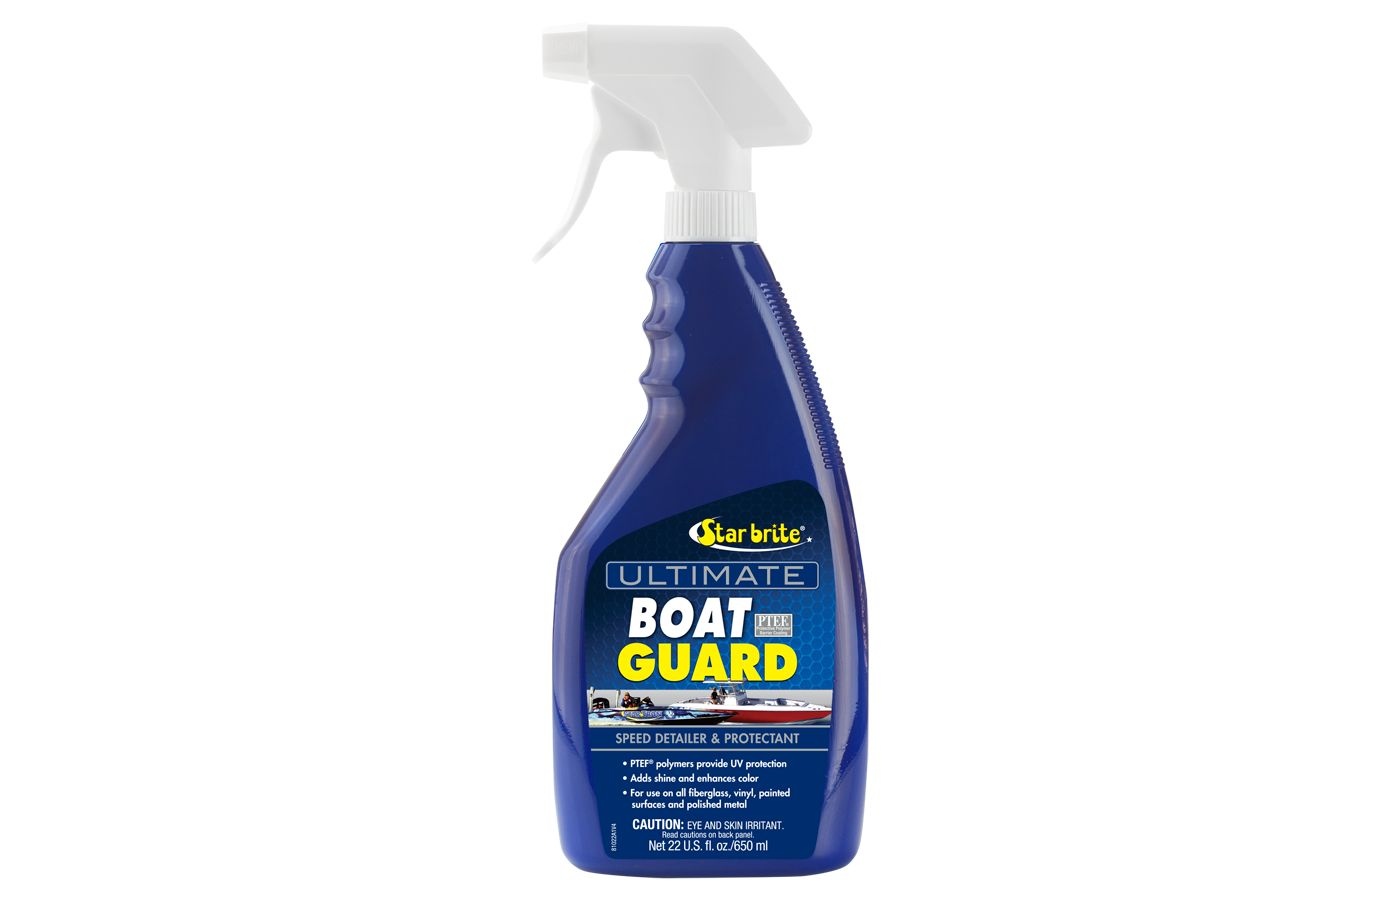 Star brite Ultimate Boat Guard Speed Detailer & Protectant